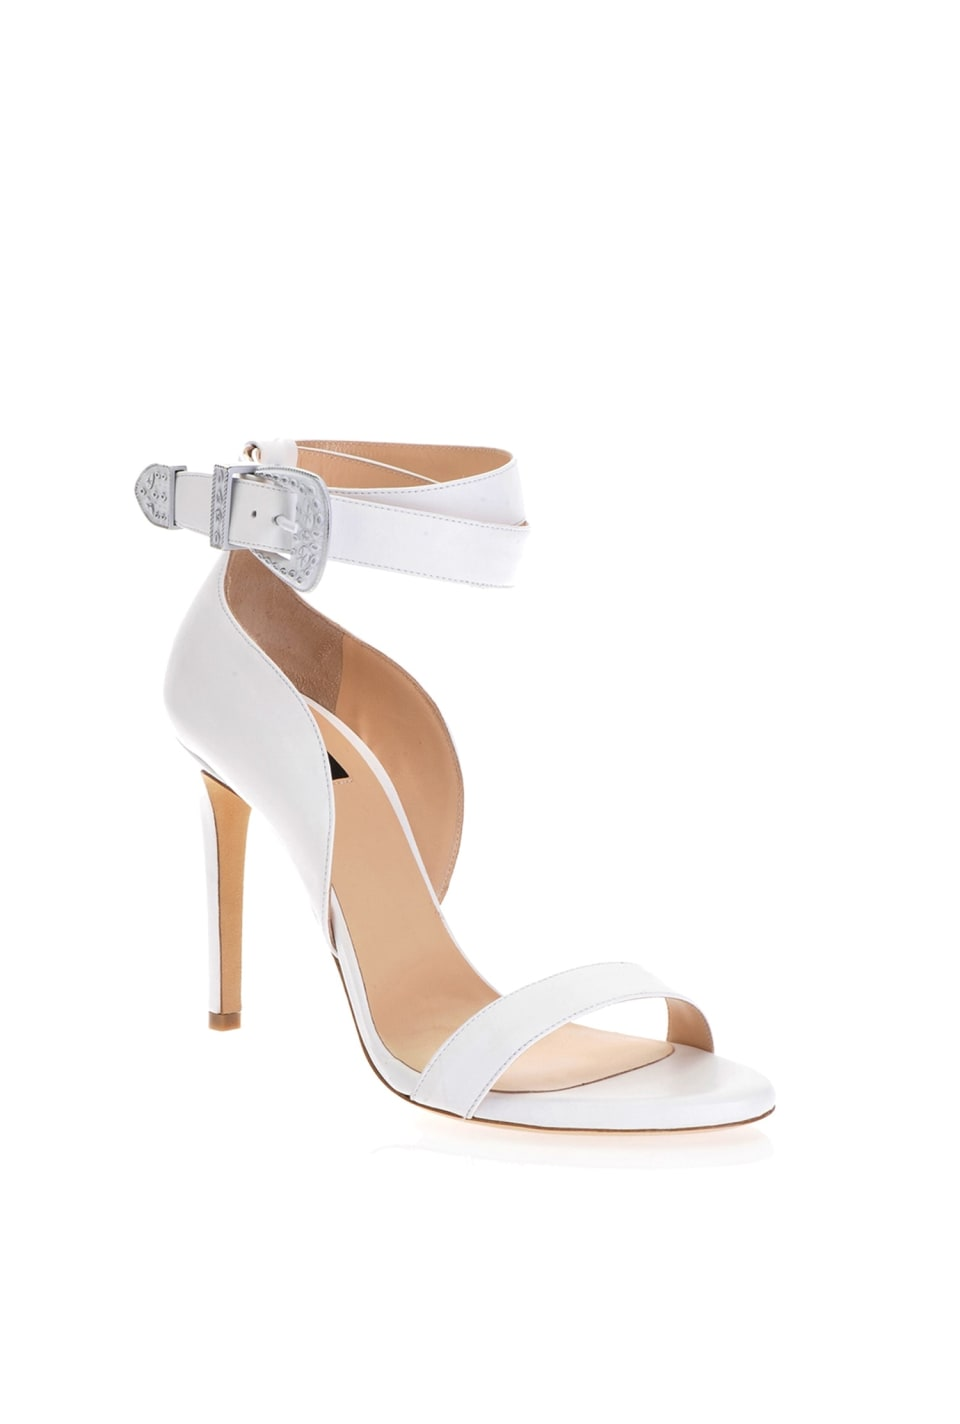 Sandals with ankle strap - Pinko